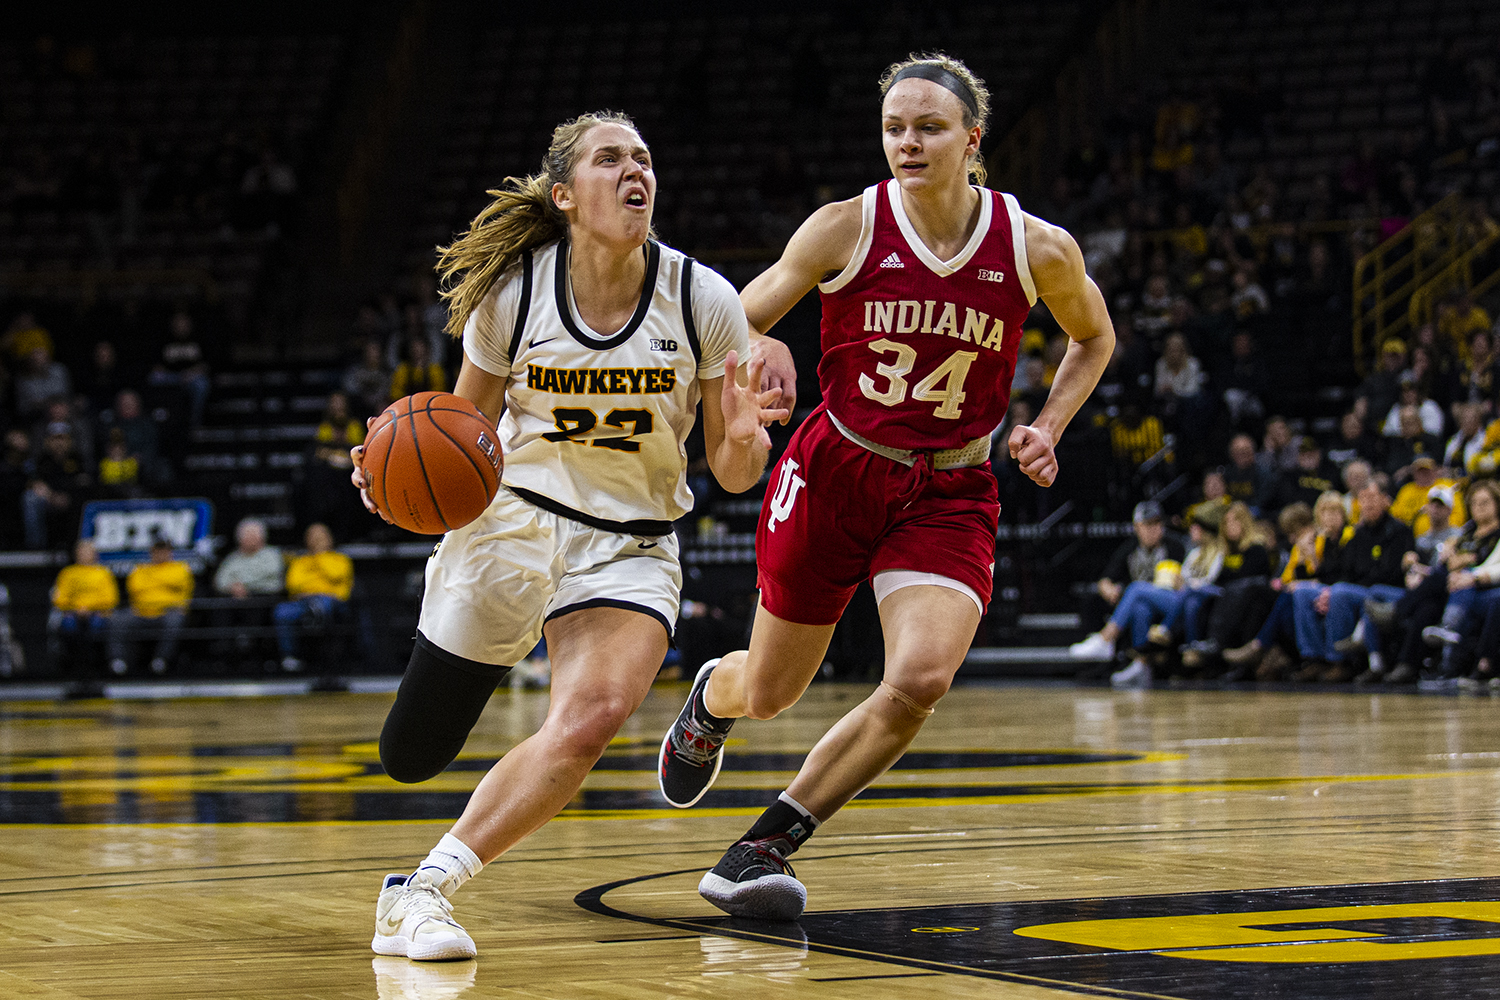 Iowa guard Kathleen Doyle drives to the rim during a womenÕs basketball game between Iowa and Indiana at Carver-Hawkeye Arena on Sunday, Jan. 12, 2020. (Shivansh Ahuja/The Daily Iowan)